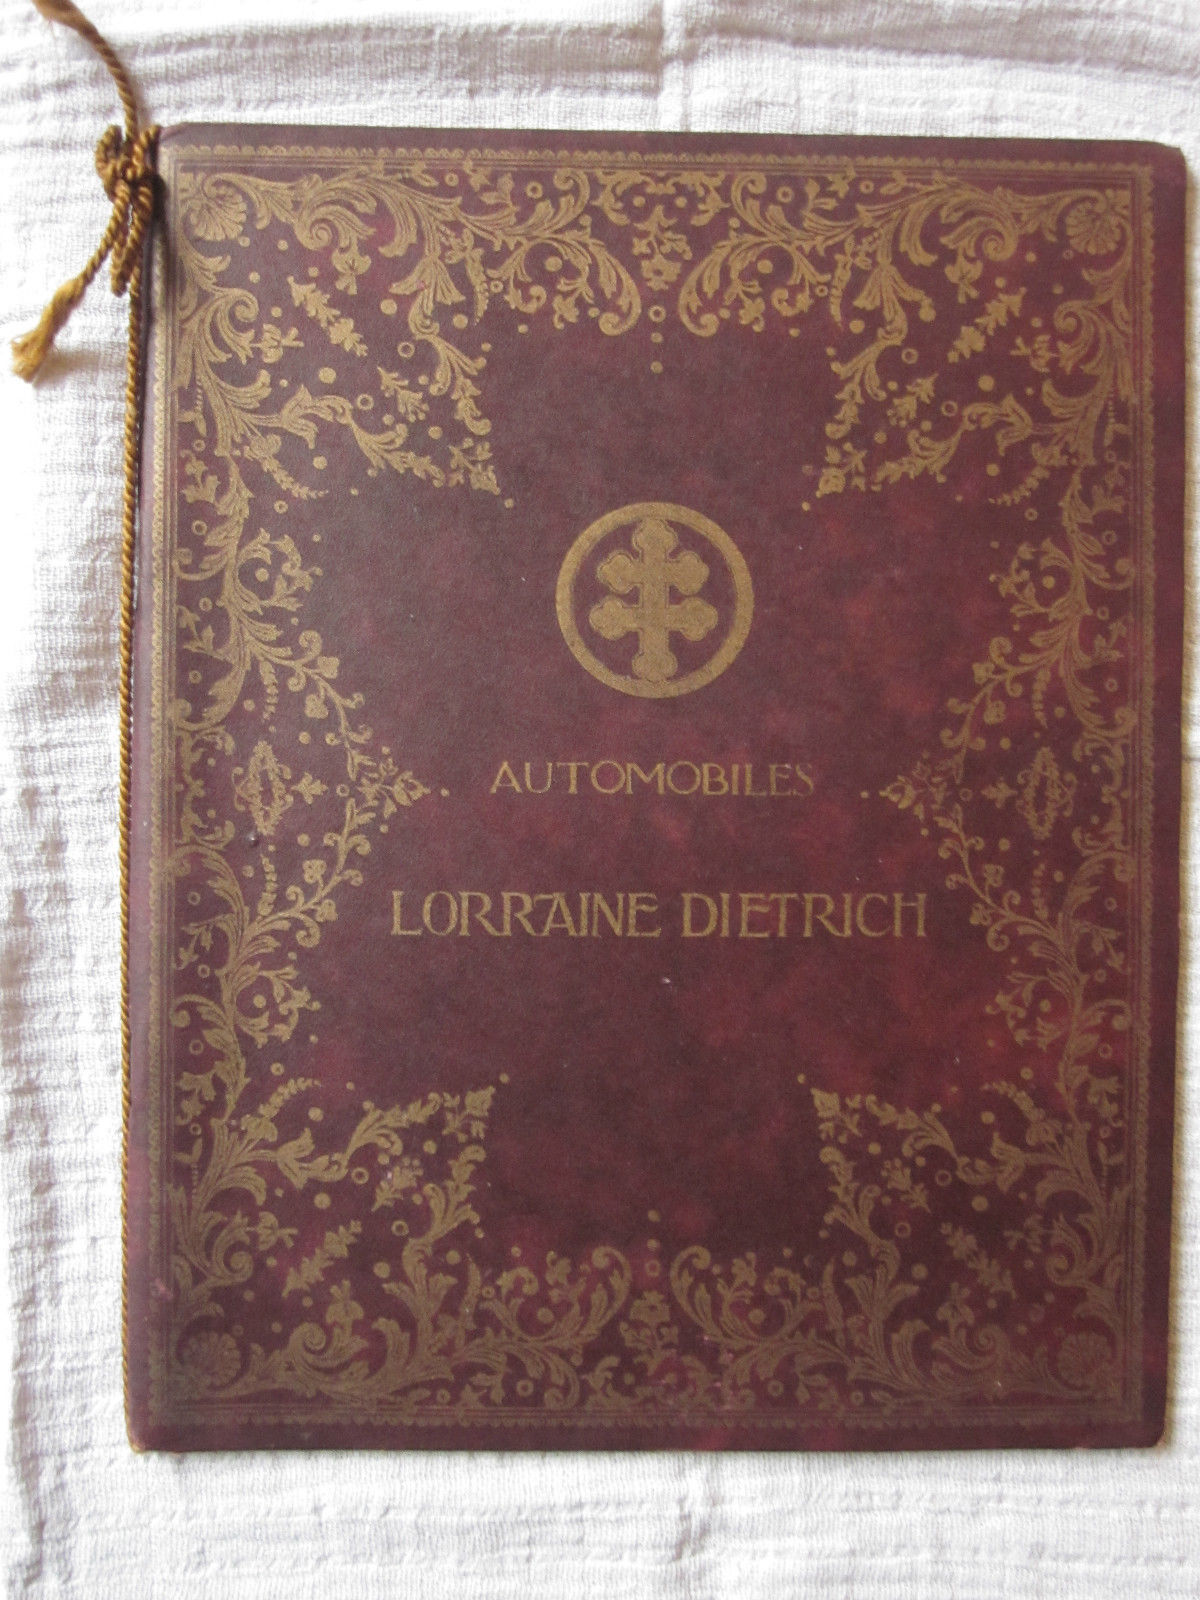 catalogue lorraine dietrich de 1909 patrimoine. Black Bedroom Furniture Sets. Home Design Ideas